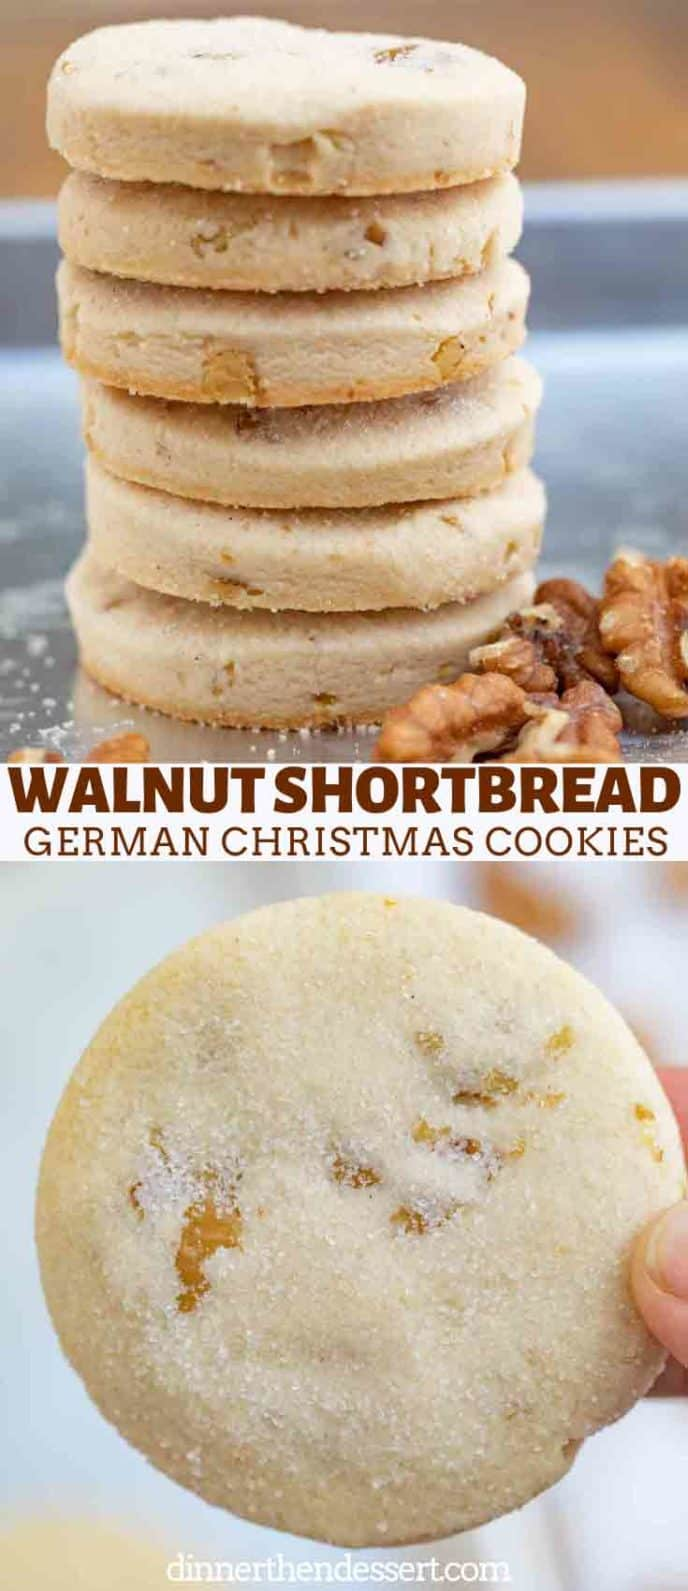 German Walnut Shortbread